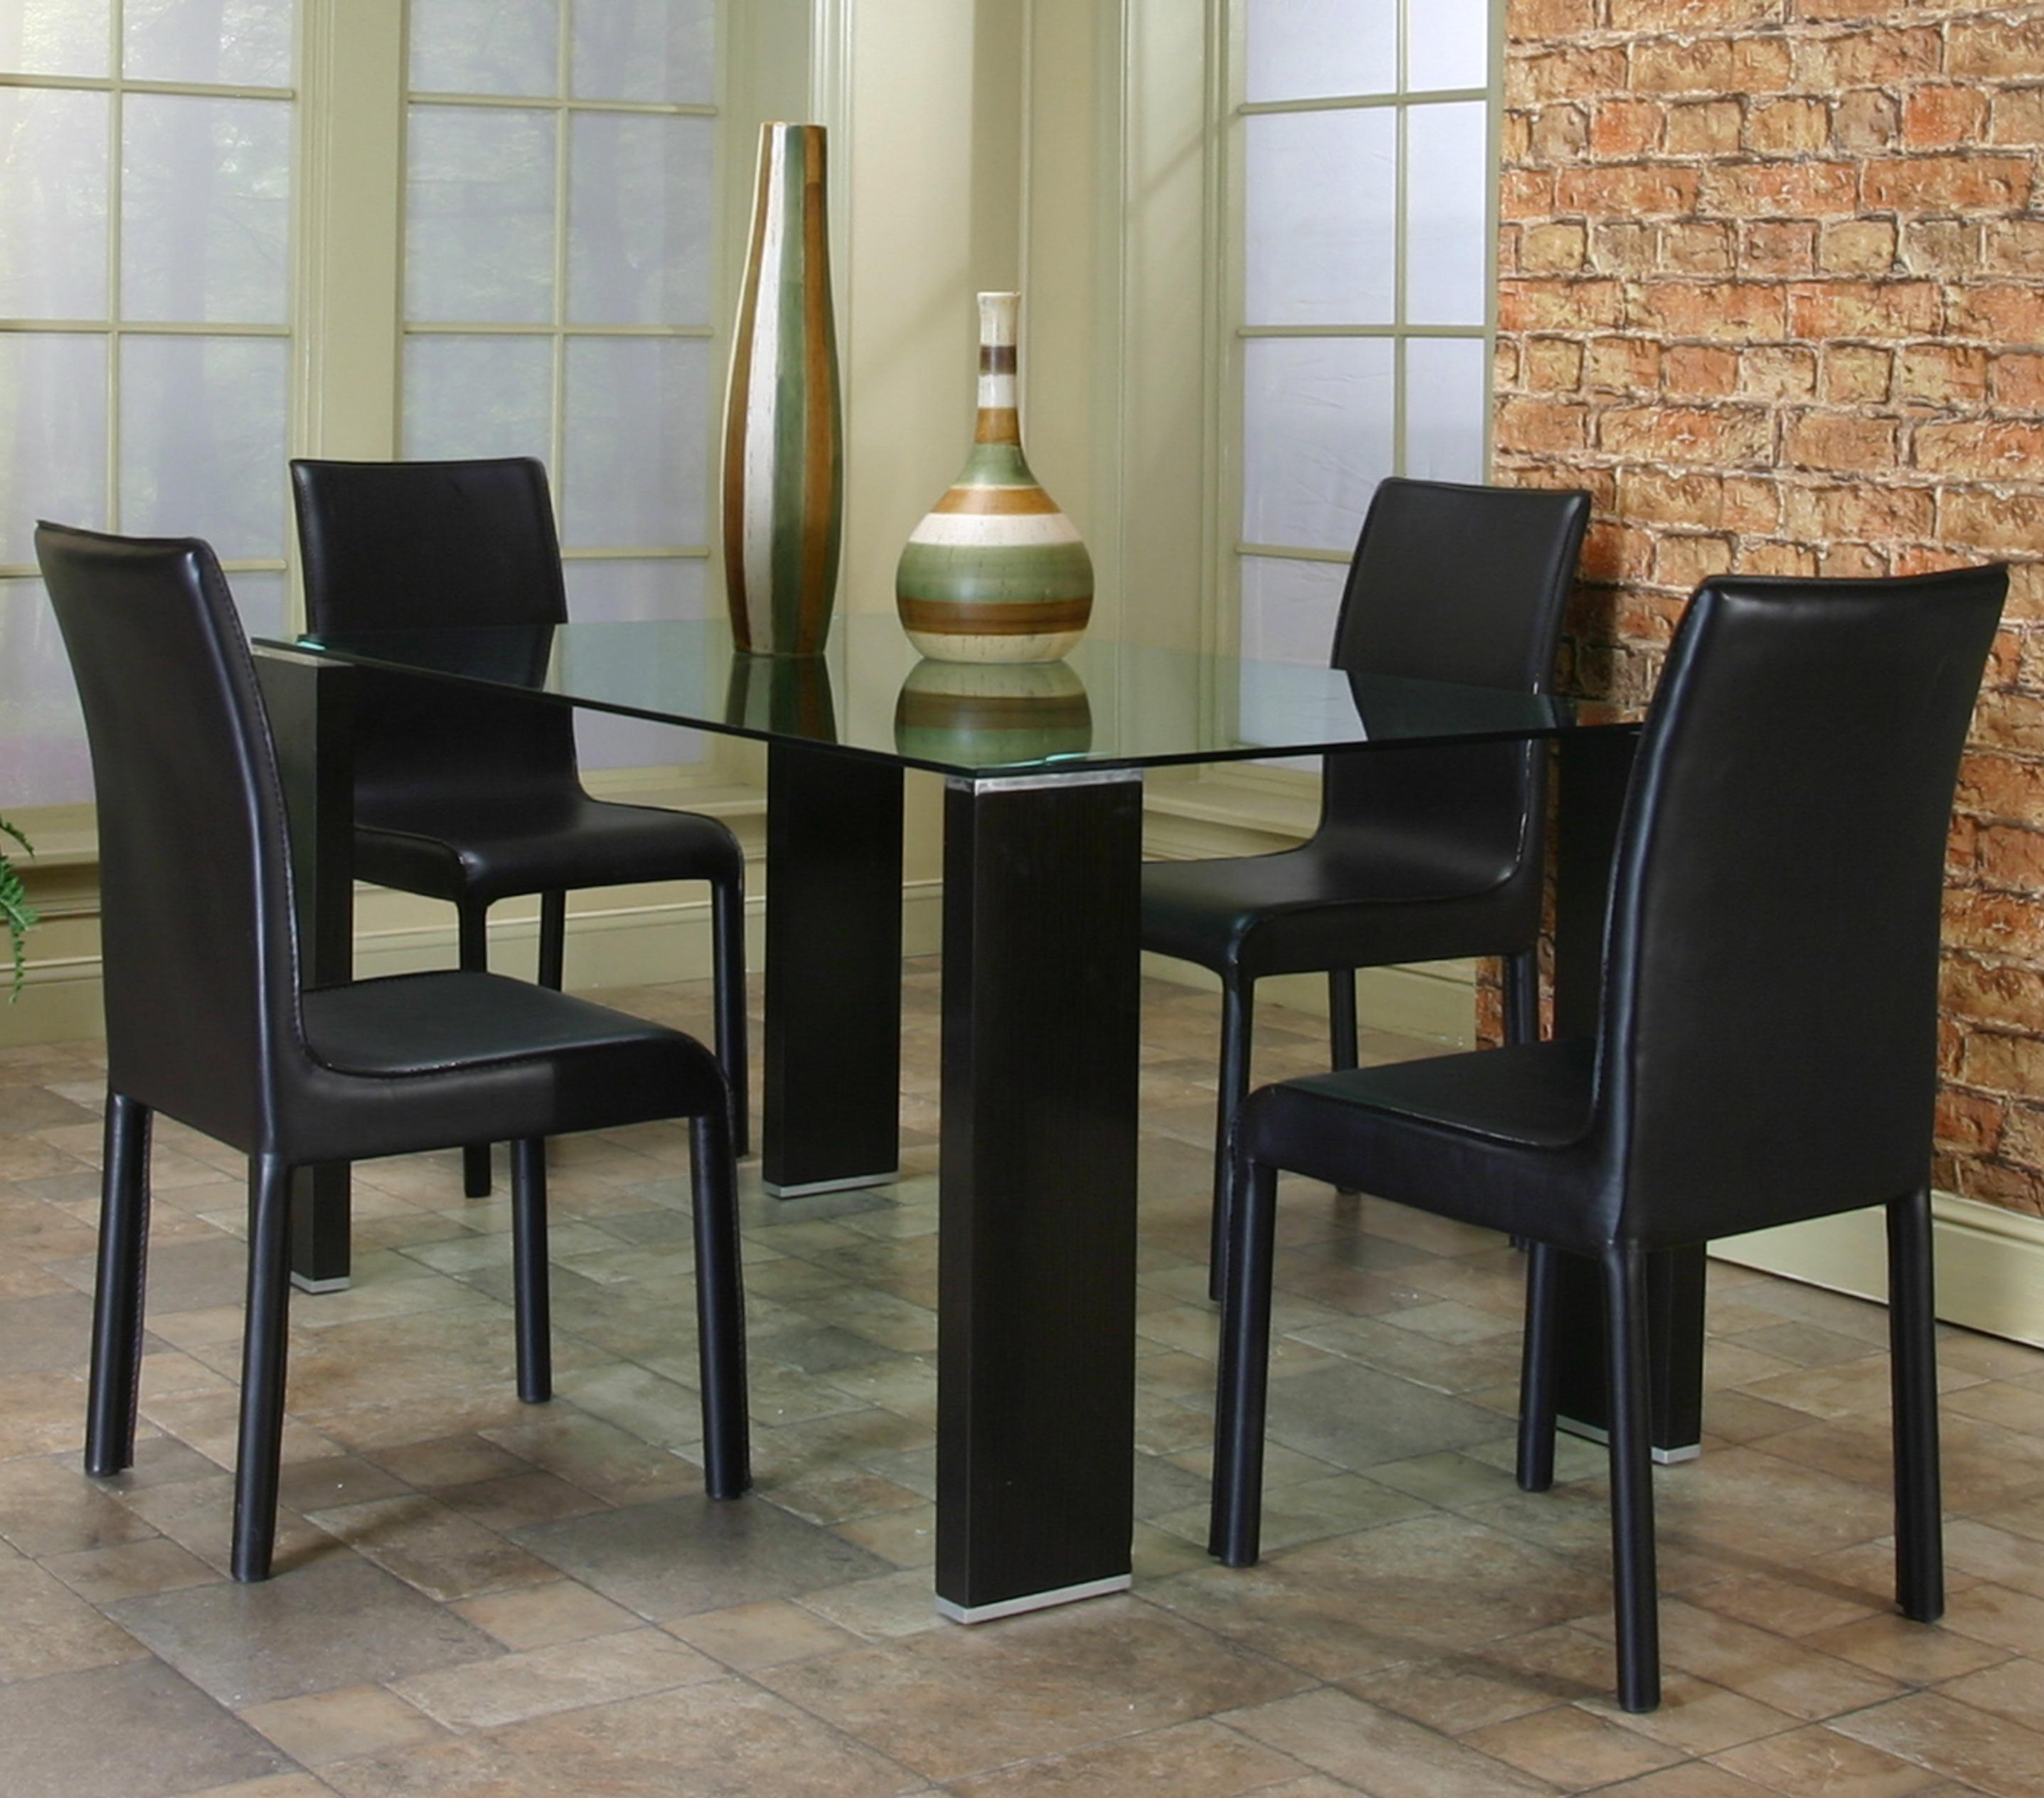 dining table designs in wood and glass kitchen table las vegas Glamorous Dining Table Design Image 7 of 19